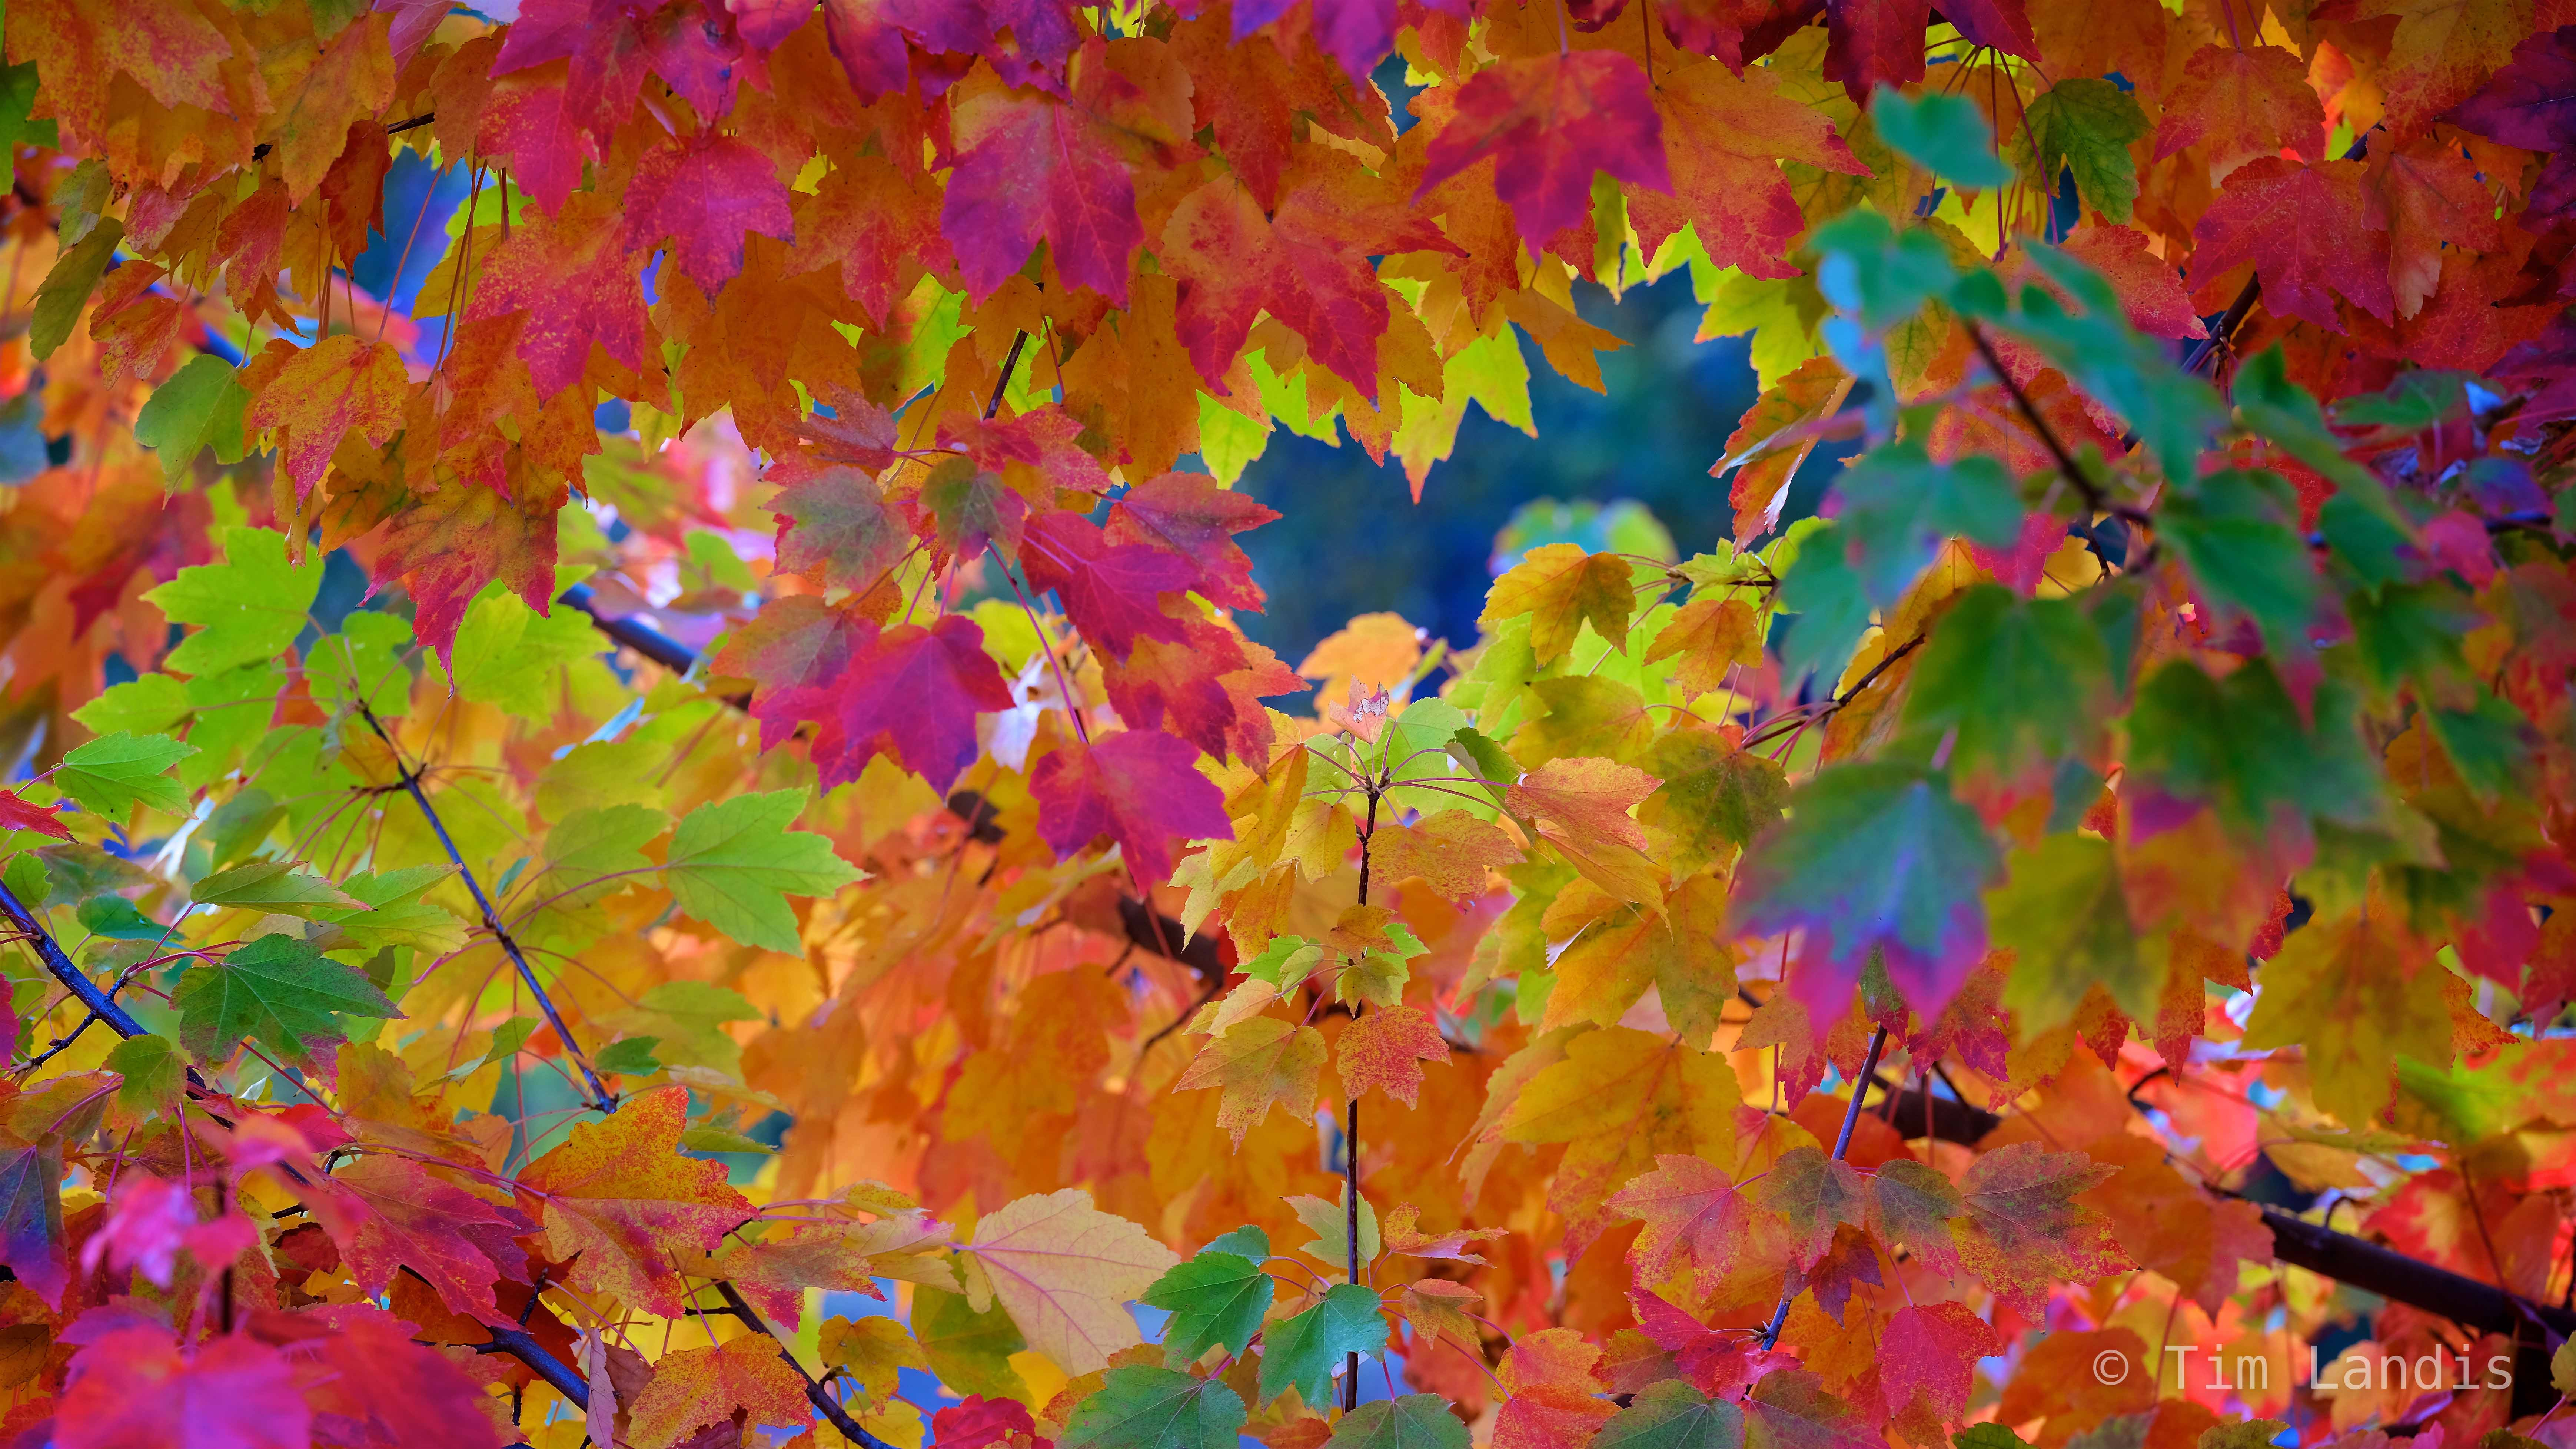 Amazing colors, Maple Tree leaves, full spectrum, greens, magentas, oranges, yellow, photo